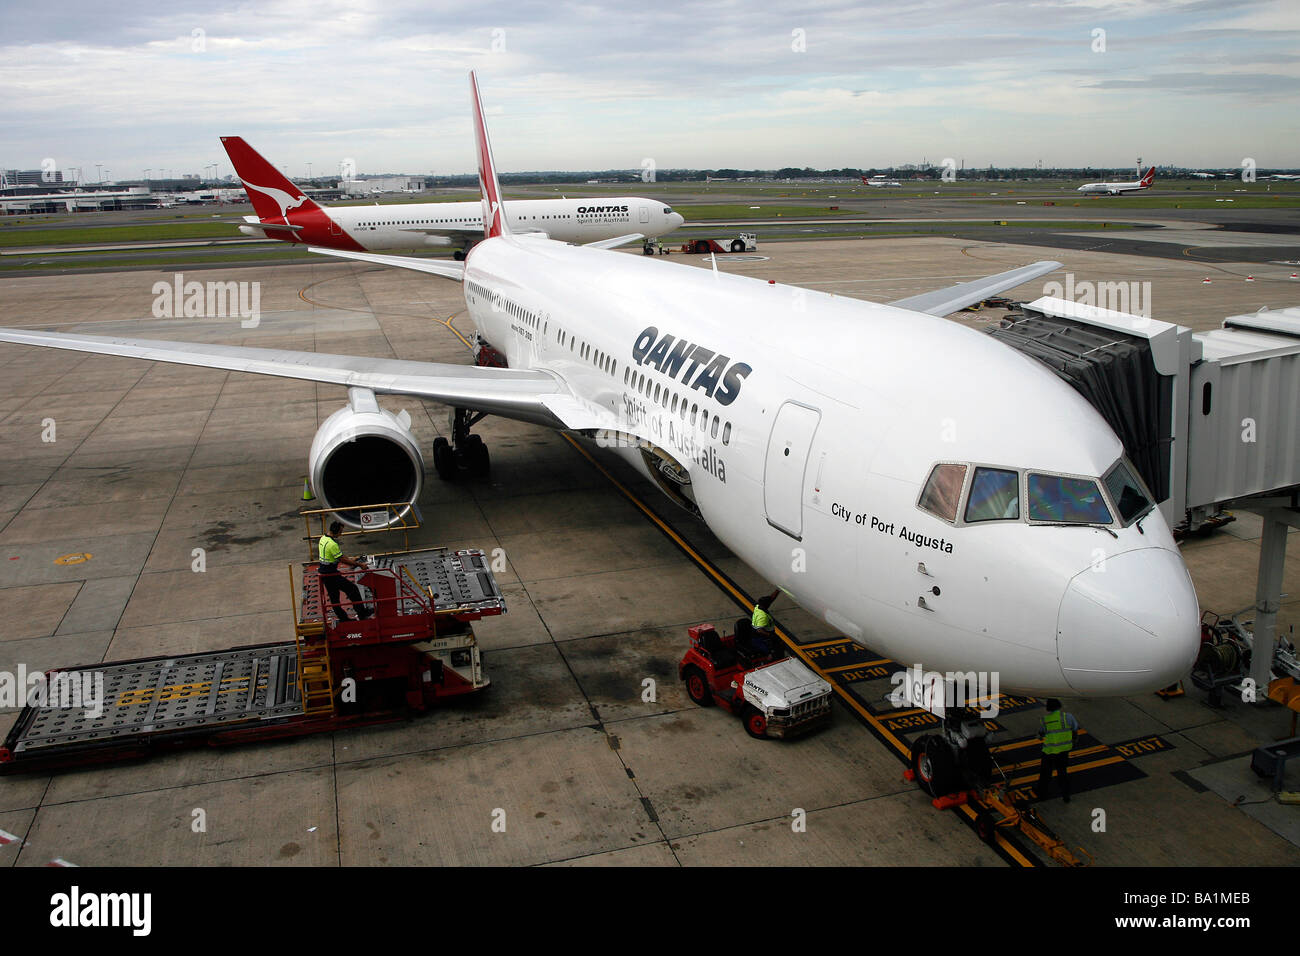 A Qantas Boeing 767-338ER aircraft sits on the tarmac at Sydney Kingsford Smith International Airport - Stock Image